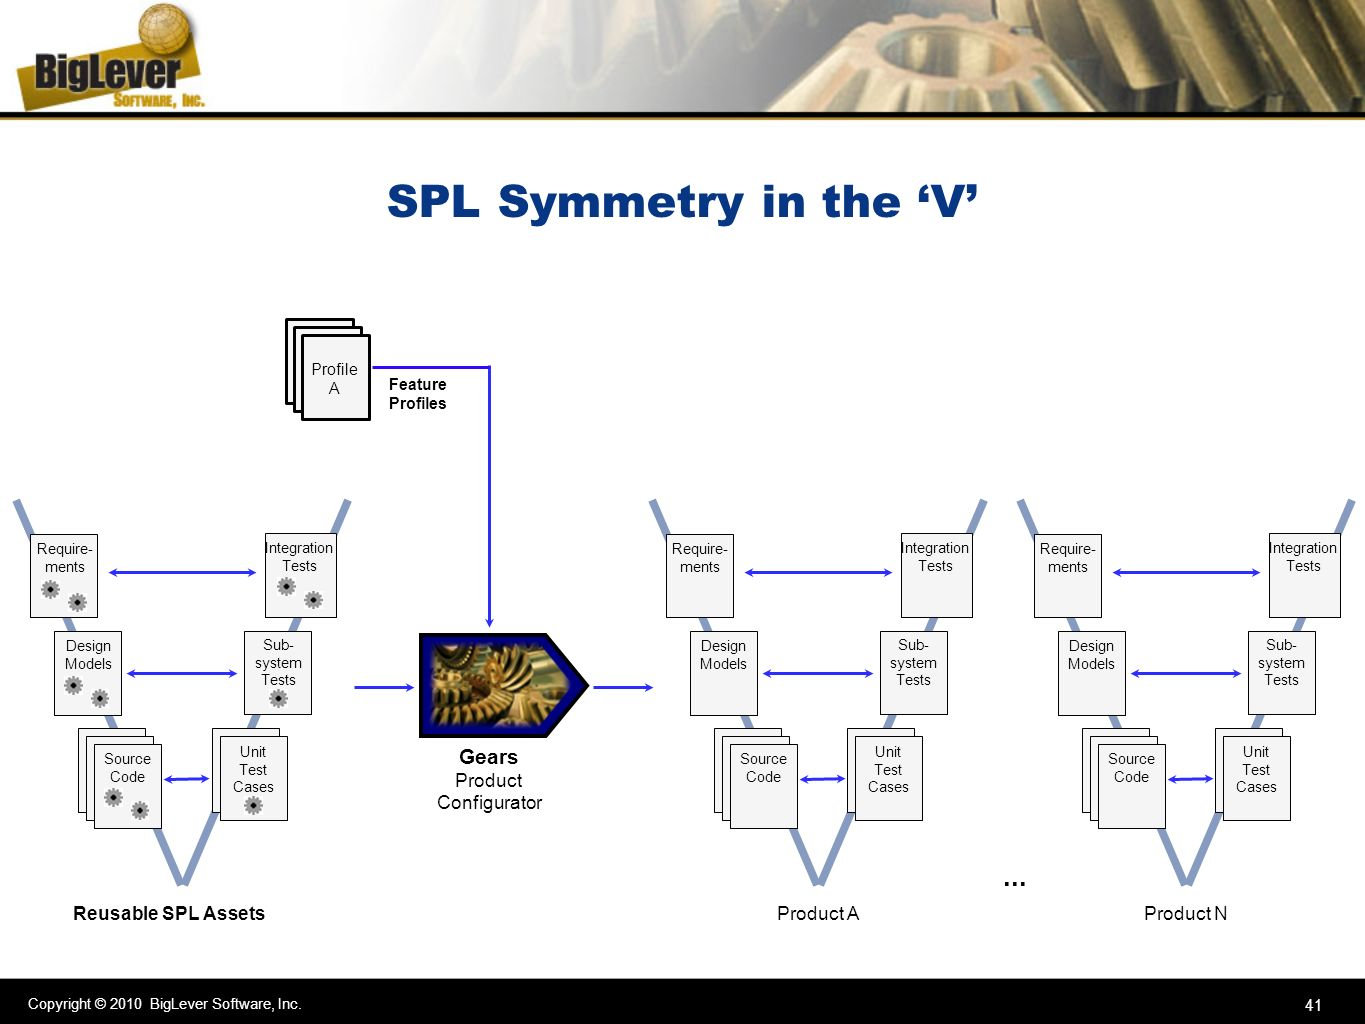 SPL Symmetry in the 'V' ... Gears Product Configurator